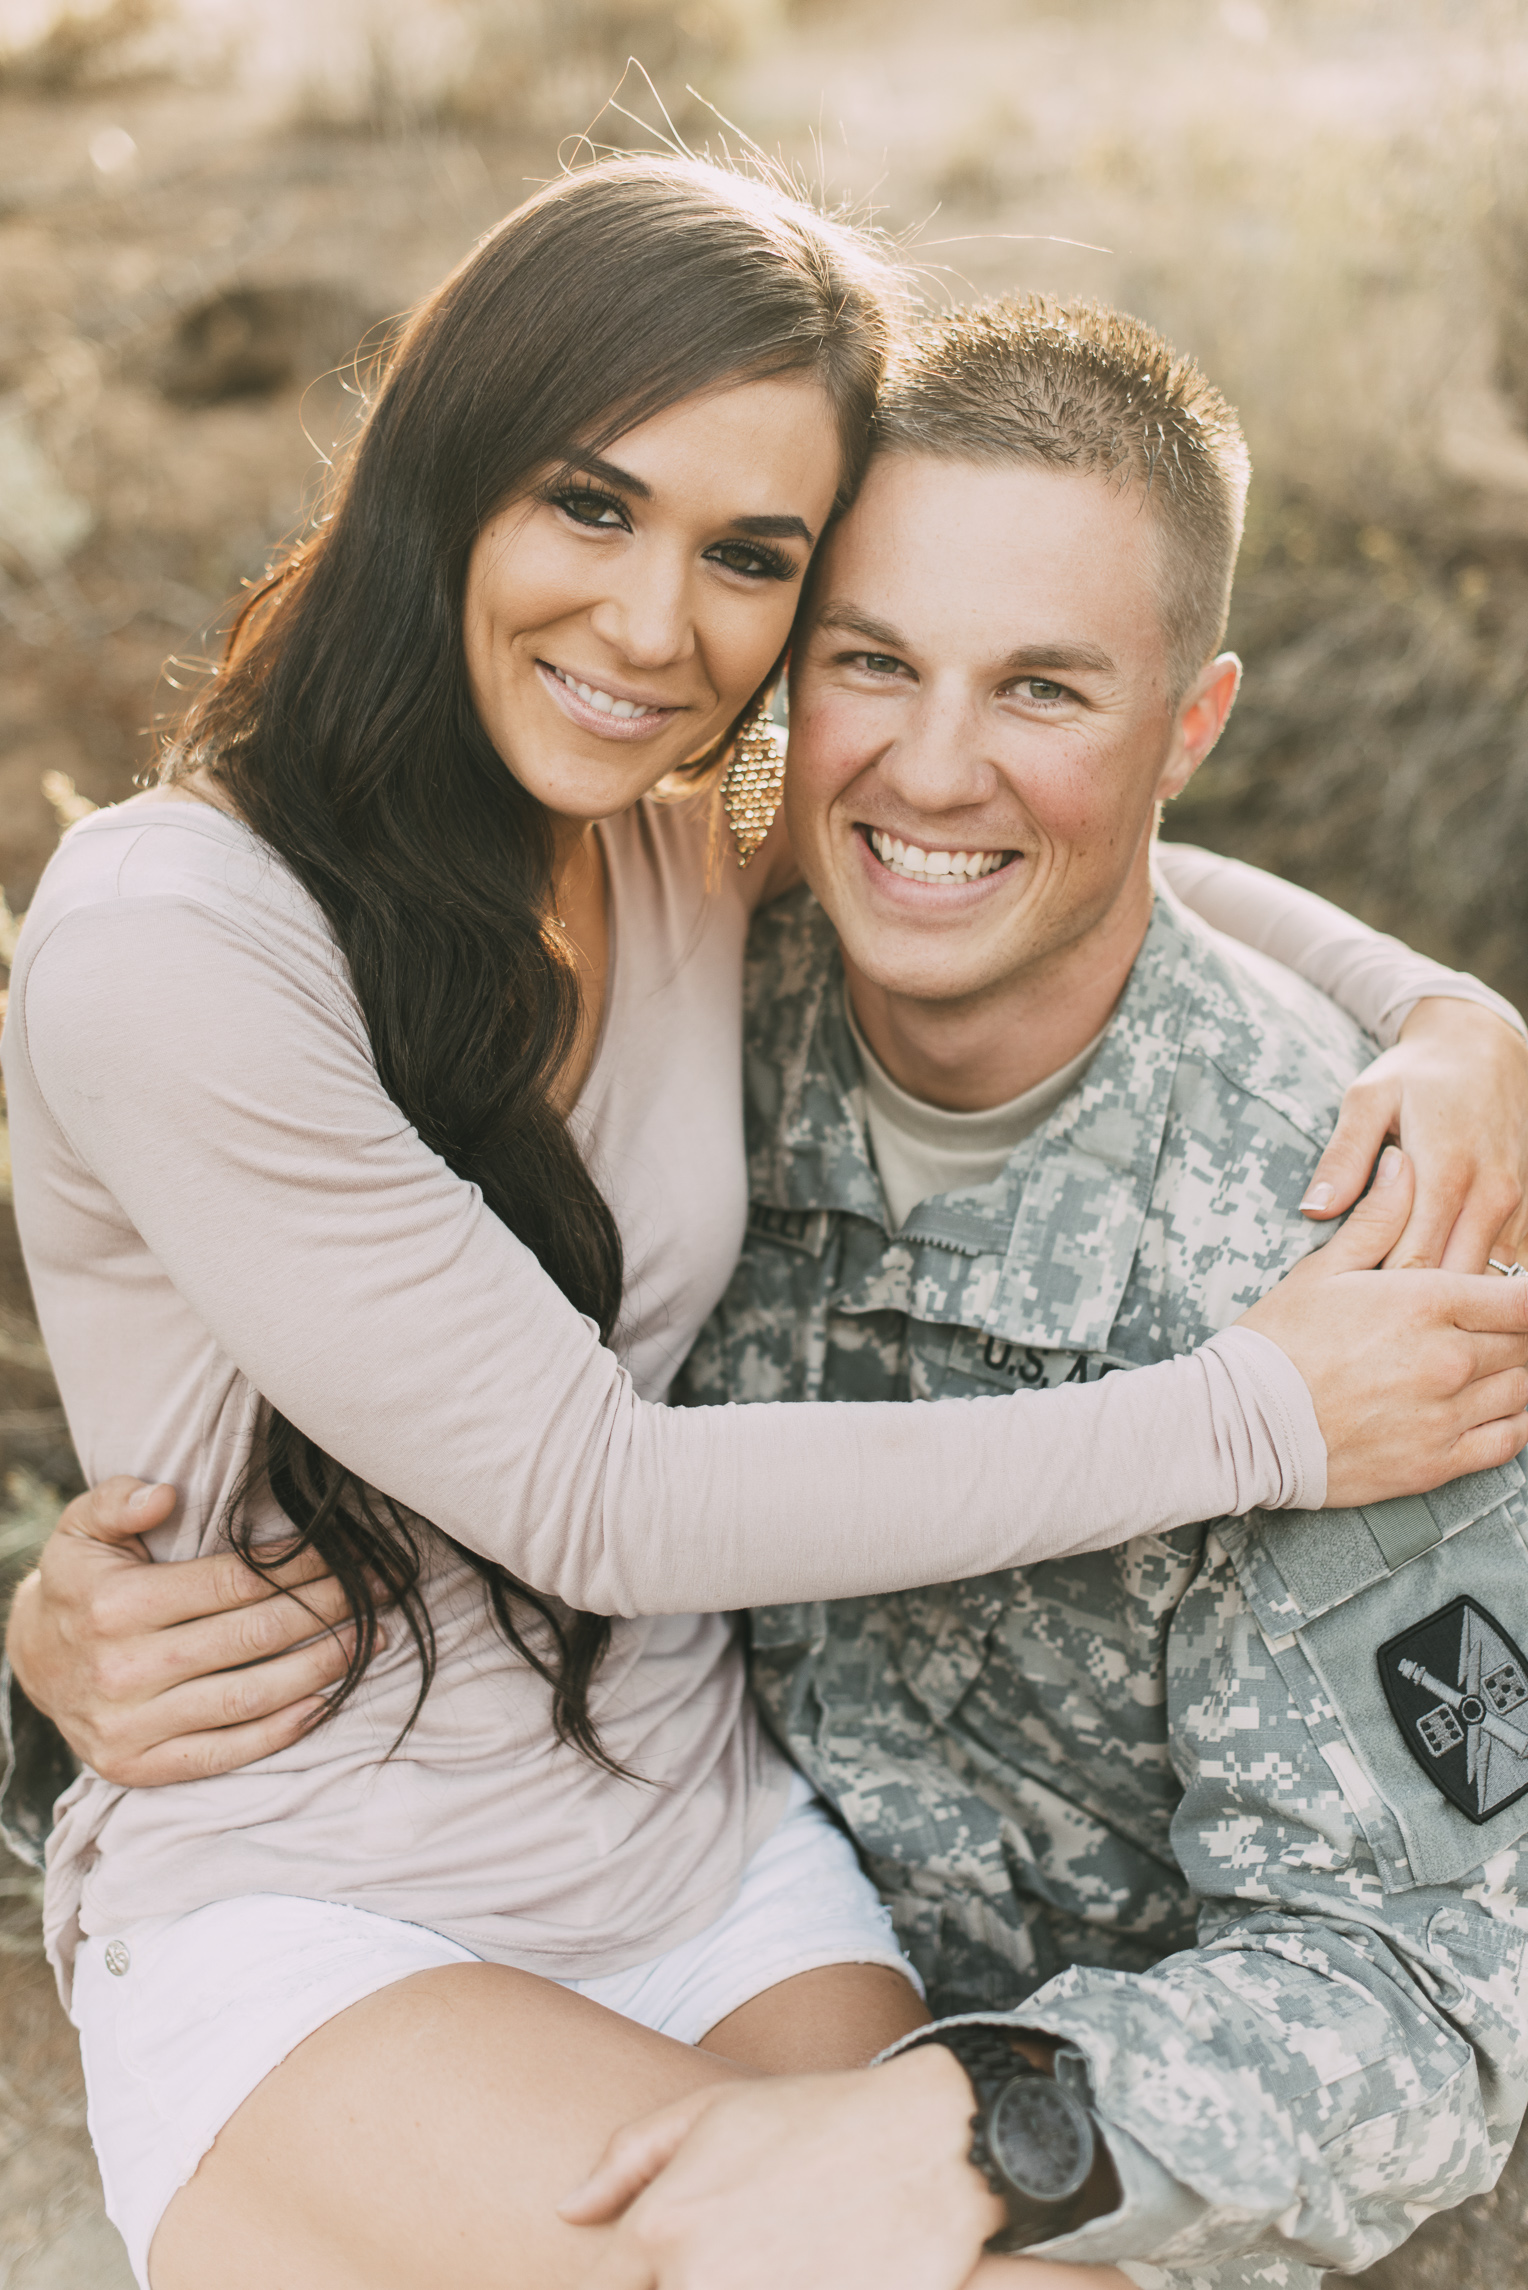 050416KELSEY & RUSTIN ENGAGEMENTS - ST. GEORGE LAS VEGAS PHOTOGRAPHER - DEBI RAE PHOTOGRAPHY-18.jpg